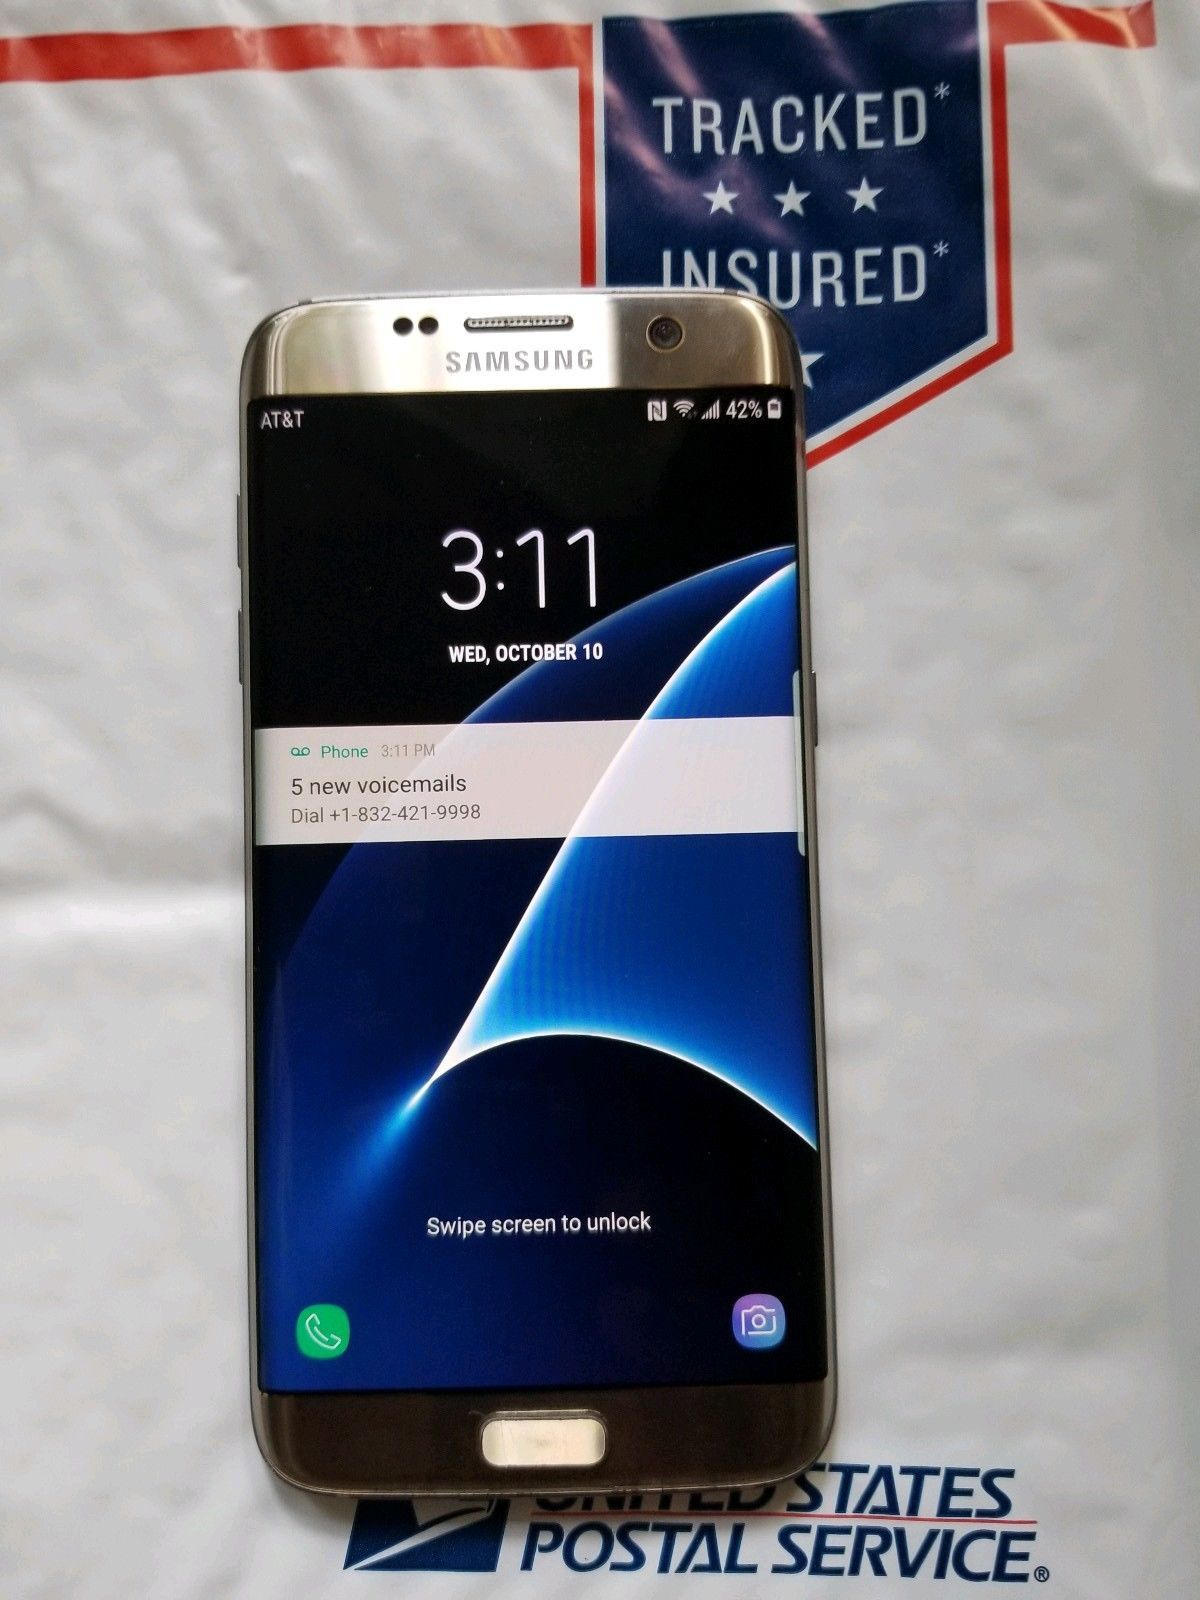 Guide on How to Locate Lost Galaxy S7 Edge: